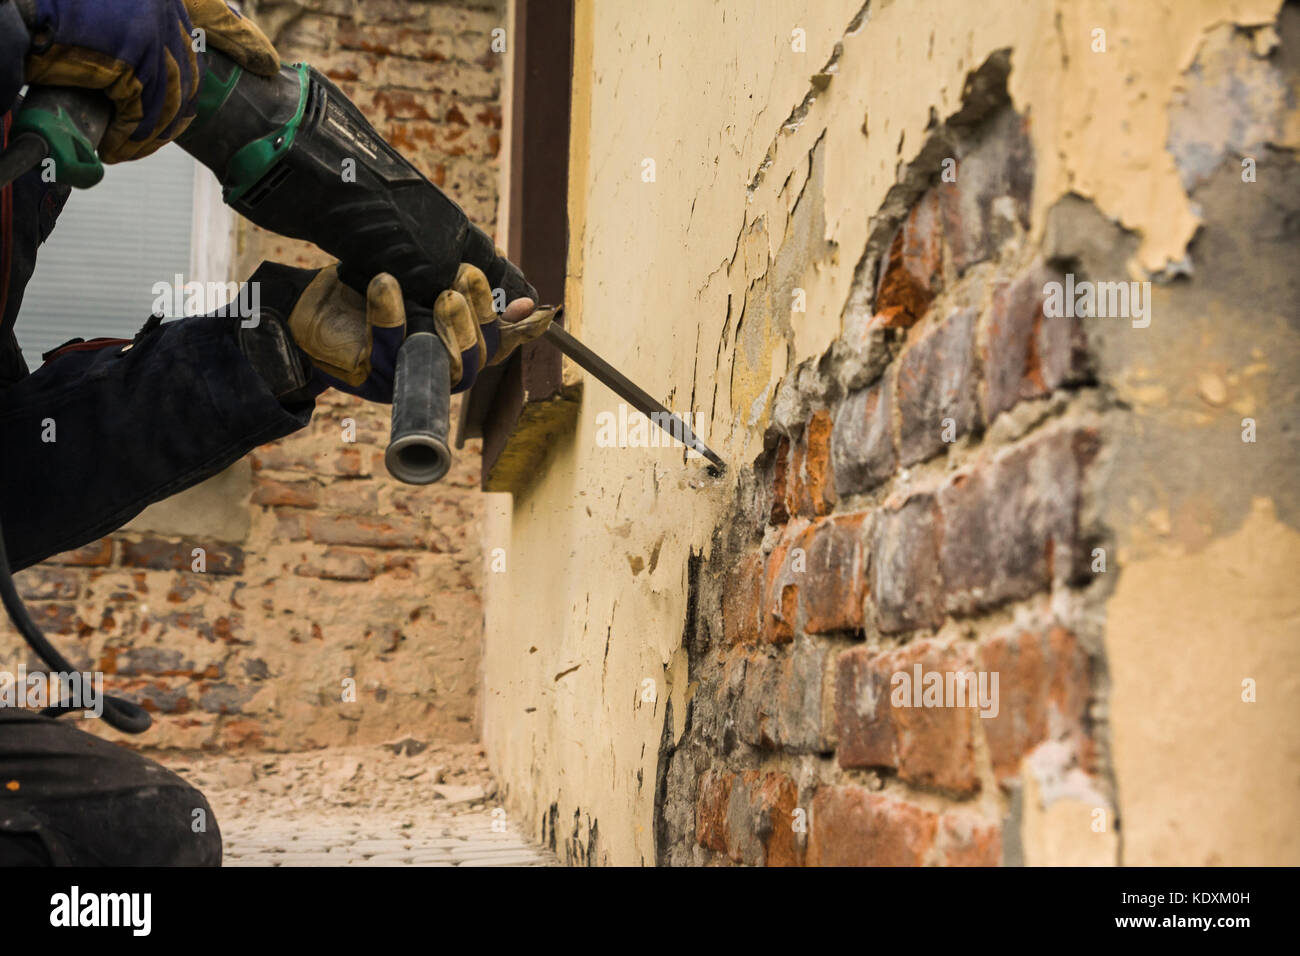 Stone Removing Machine Stock Photos Stone Removing Machine Stock Images Alamy